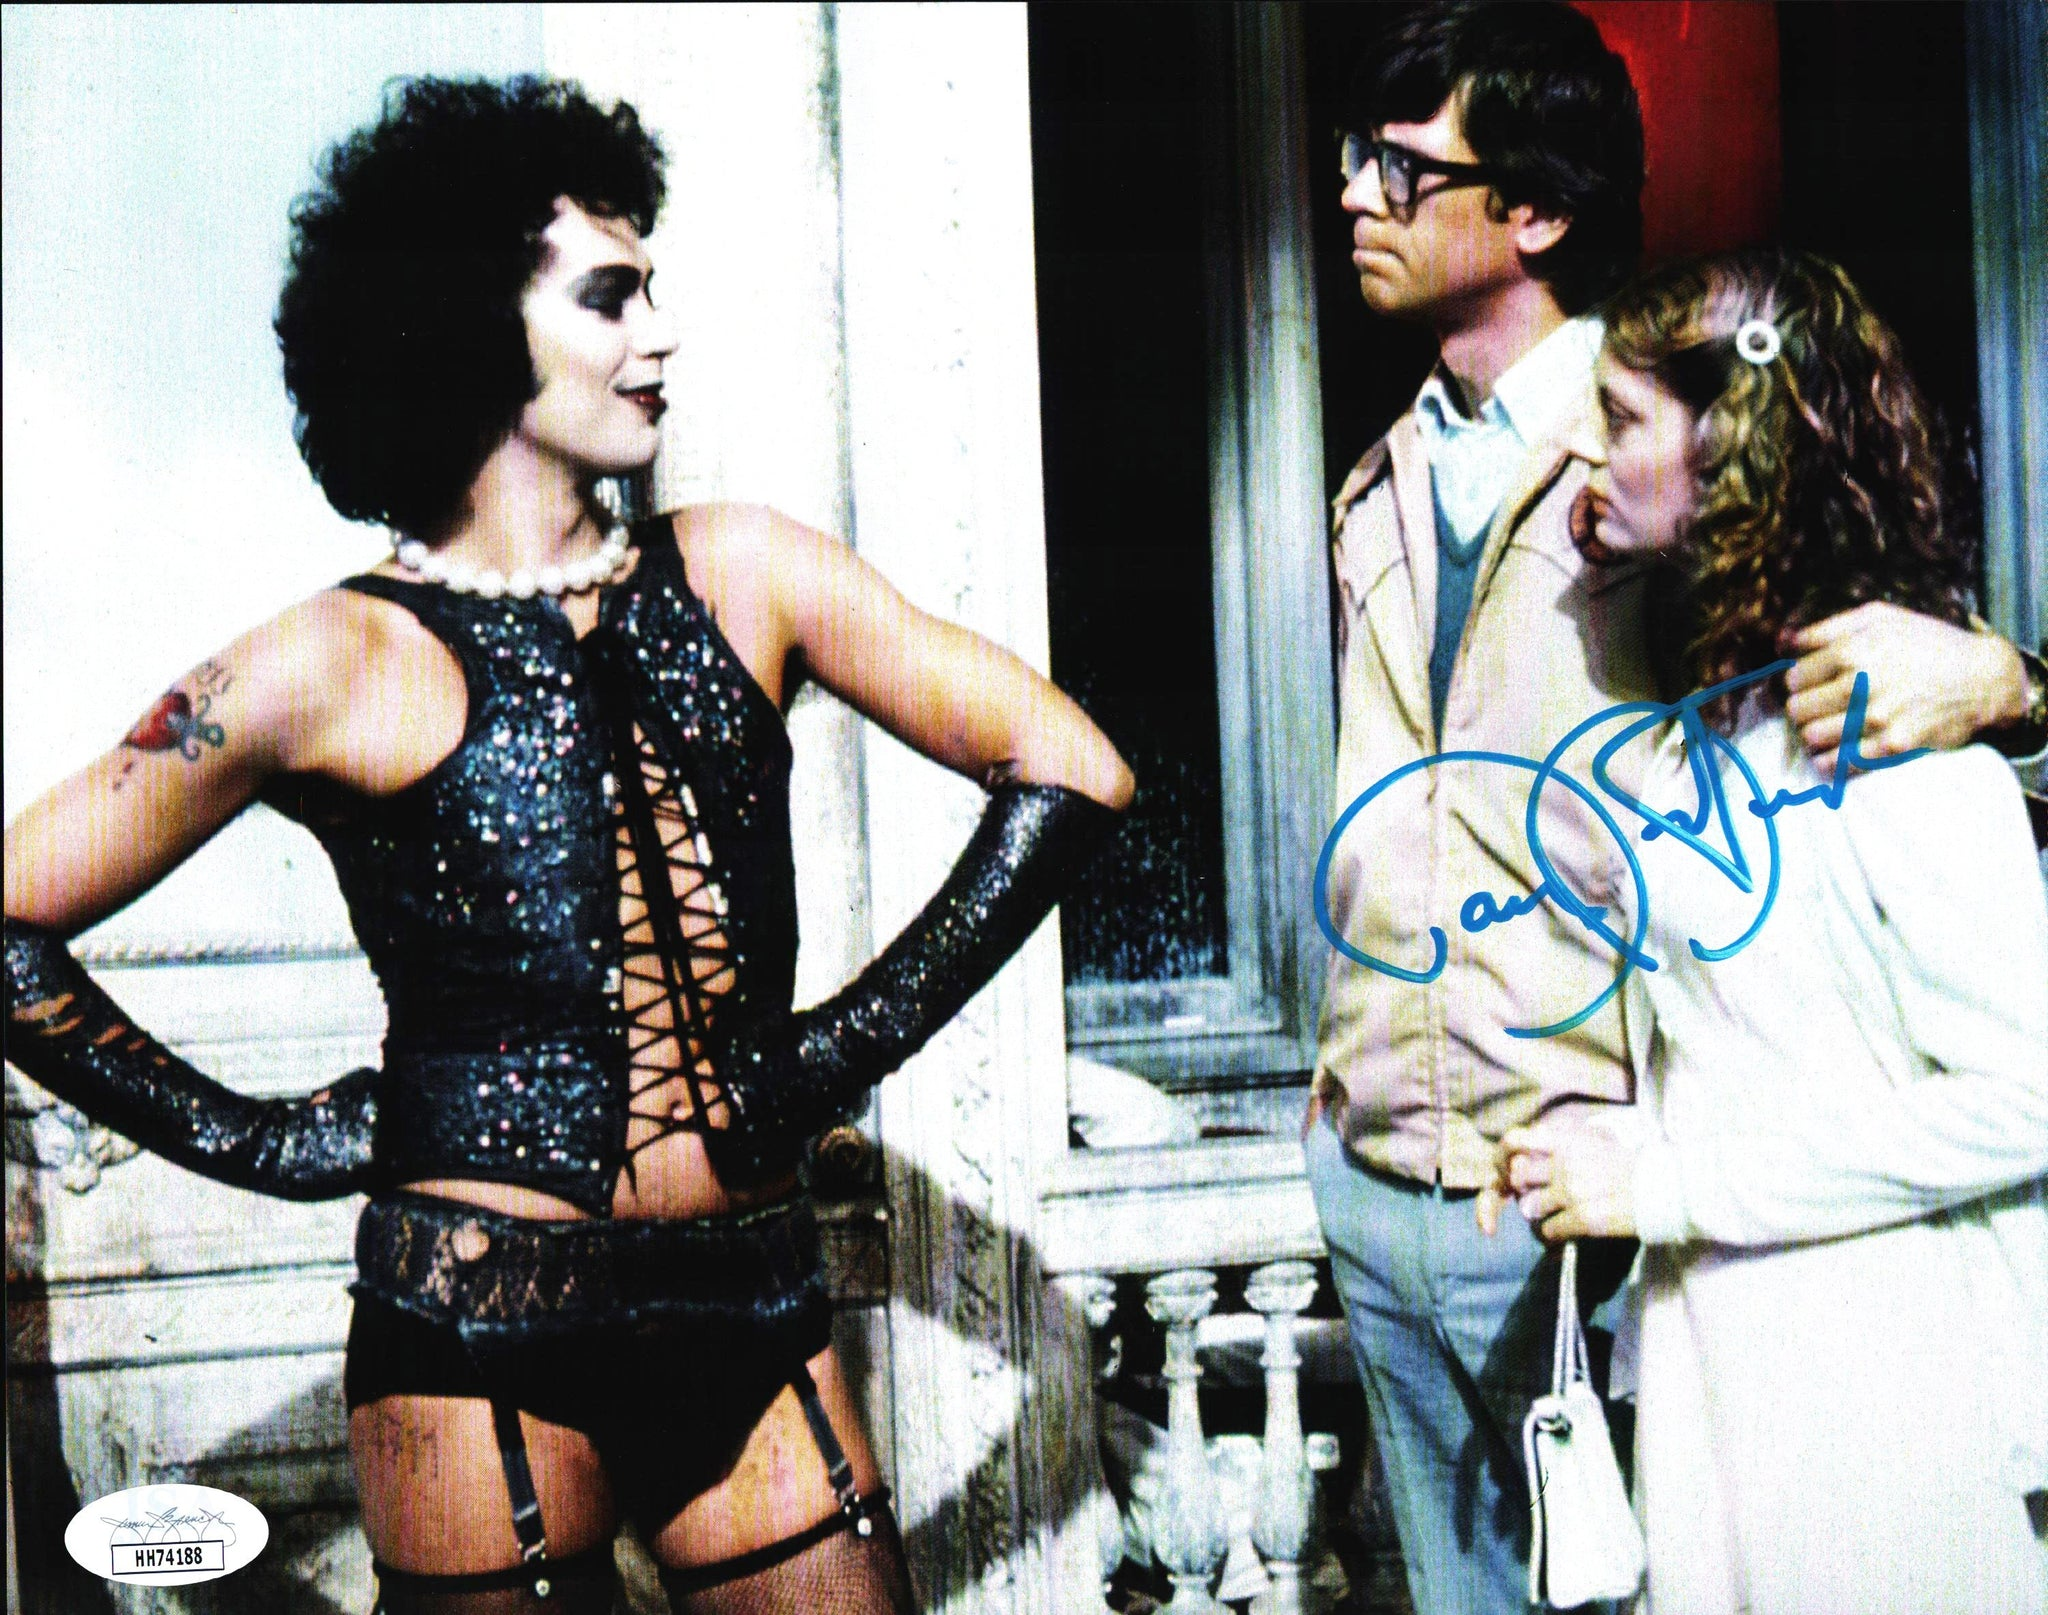 Rocky Horror Picture Show 8x10 Photo JSA Certified COA Signed by Barry Bostwick GalaxyCon